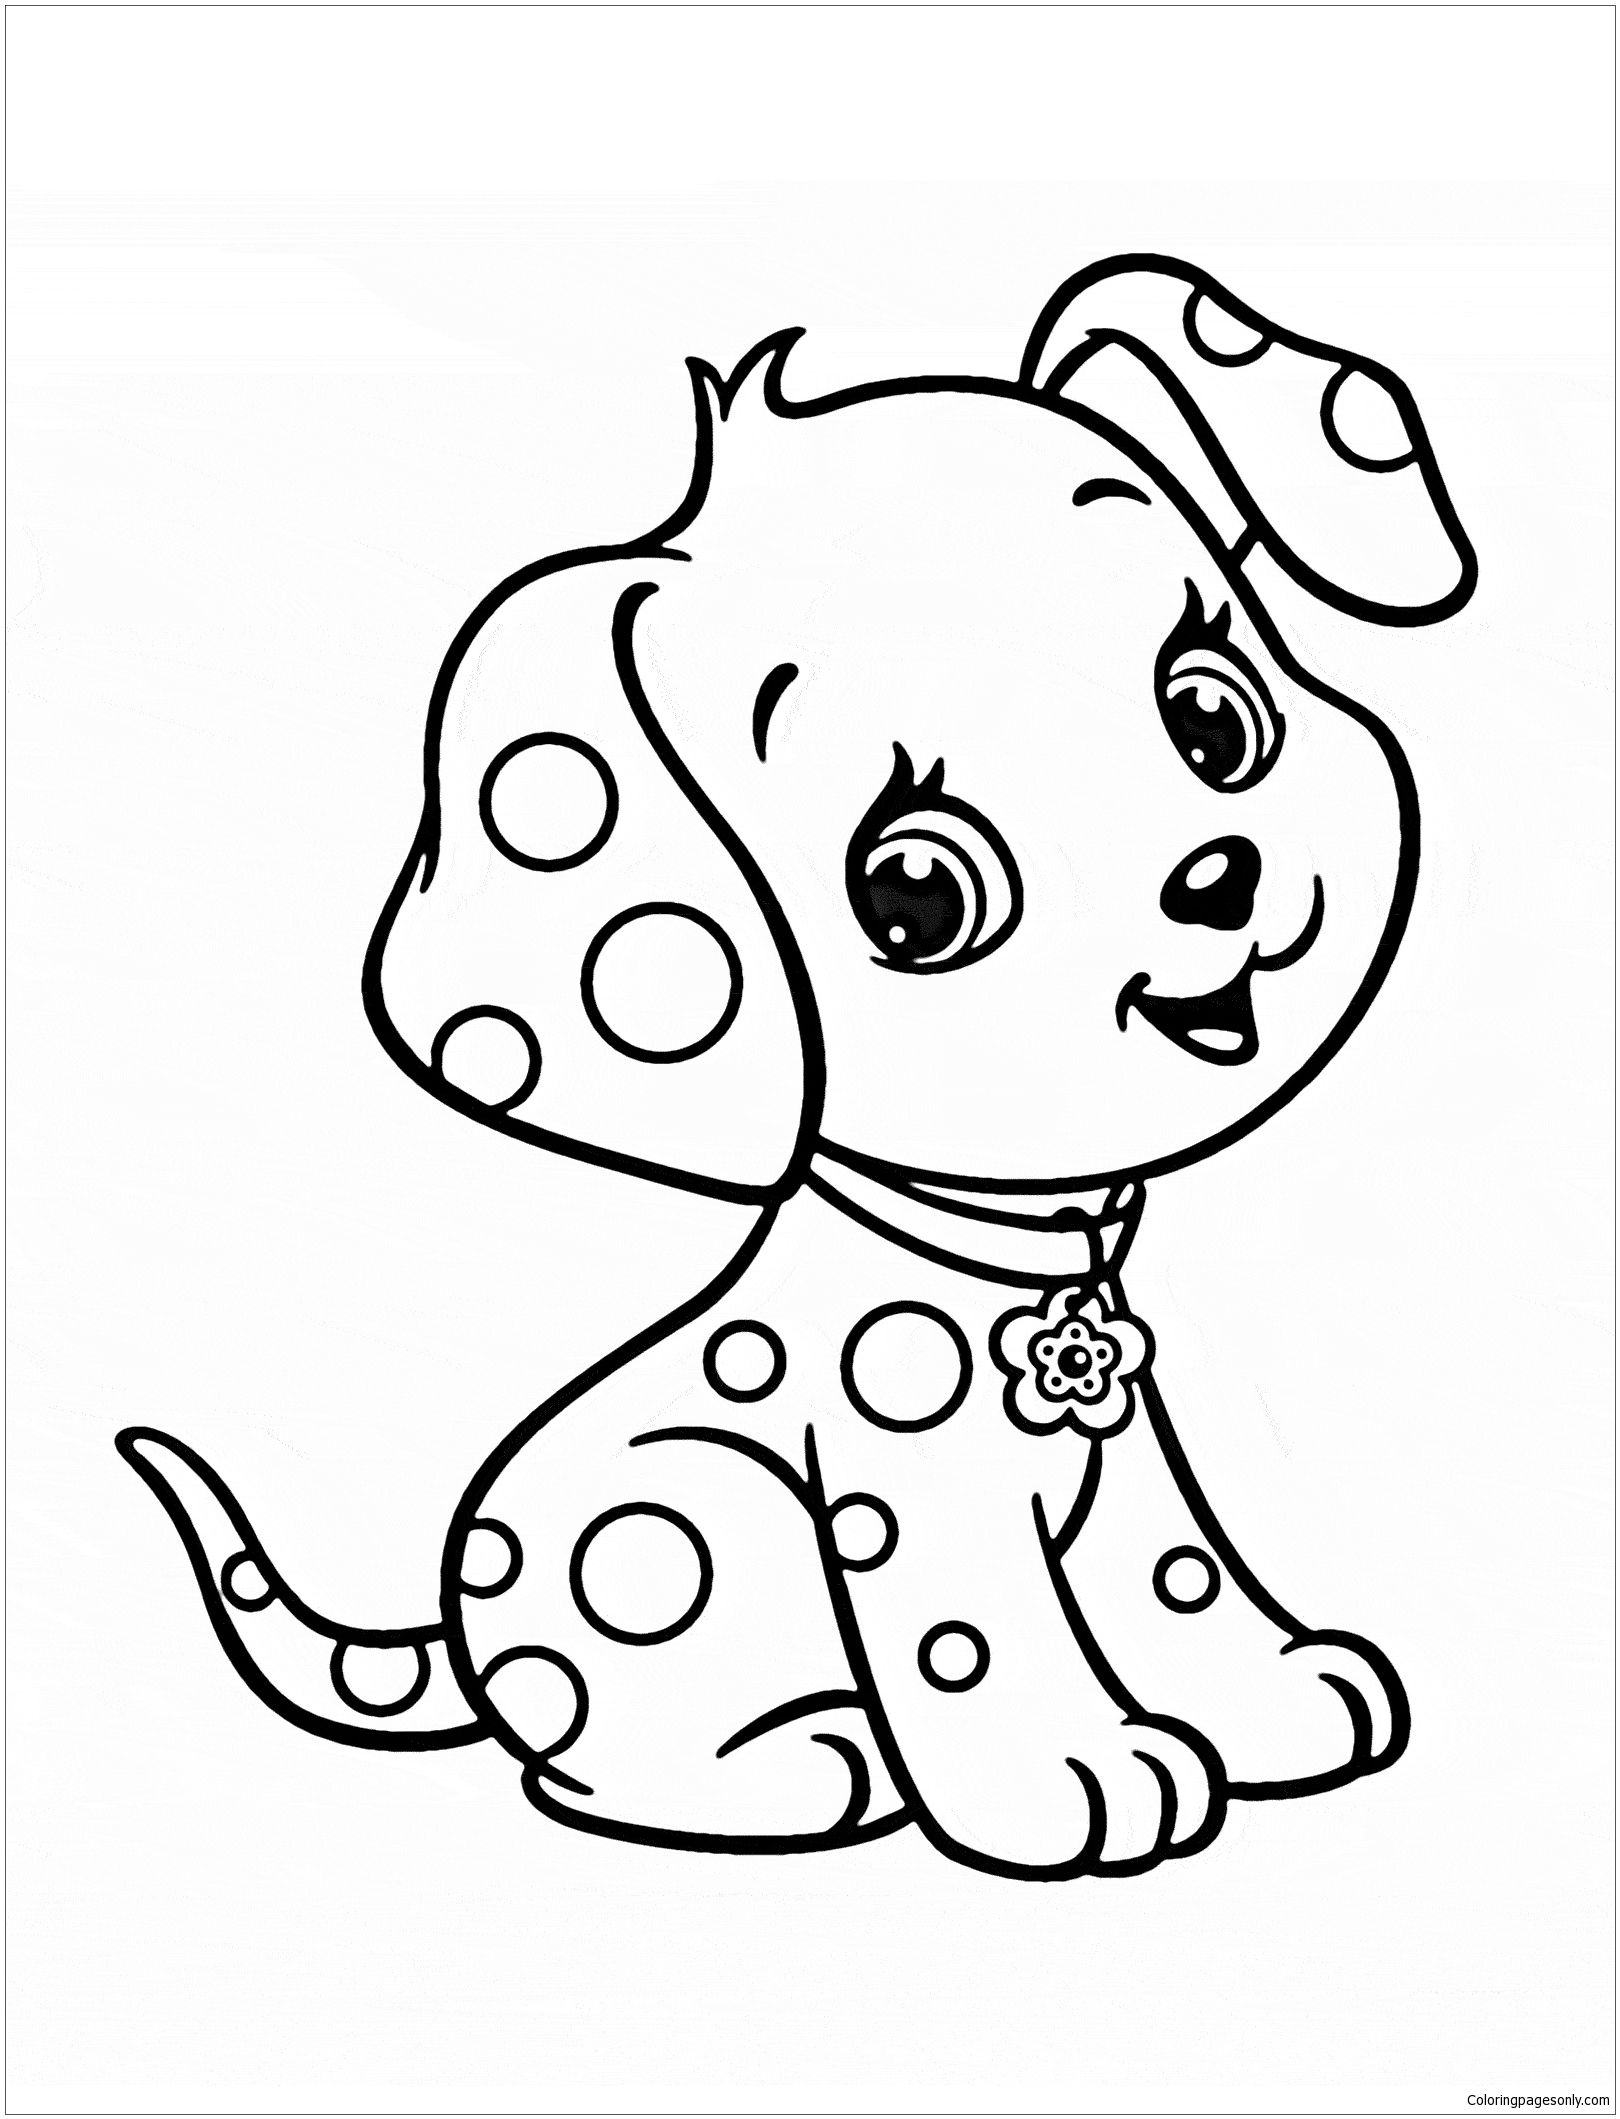 puppy printable coloring pages Cute Puppy 5 Coloring Page | Puppy Coloring Pages | Puppy coloring  puppy printable coloring pages